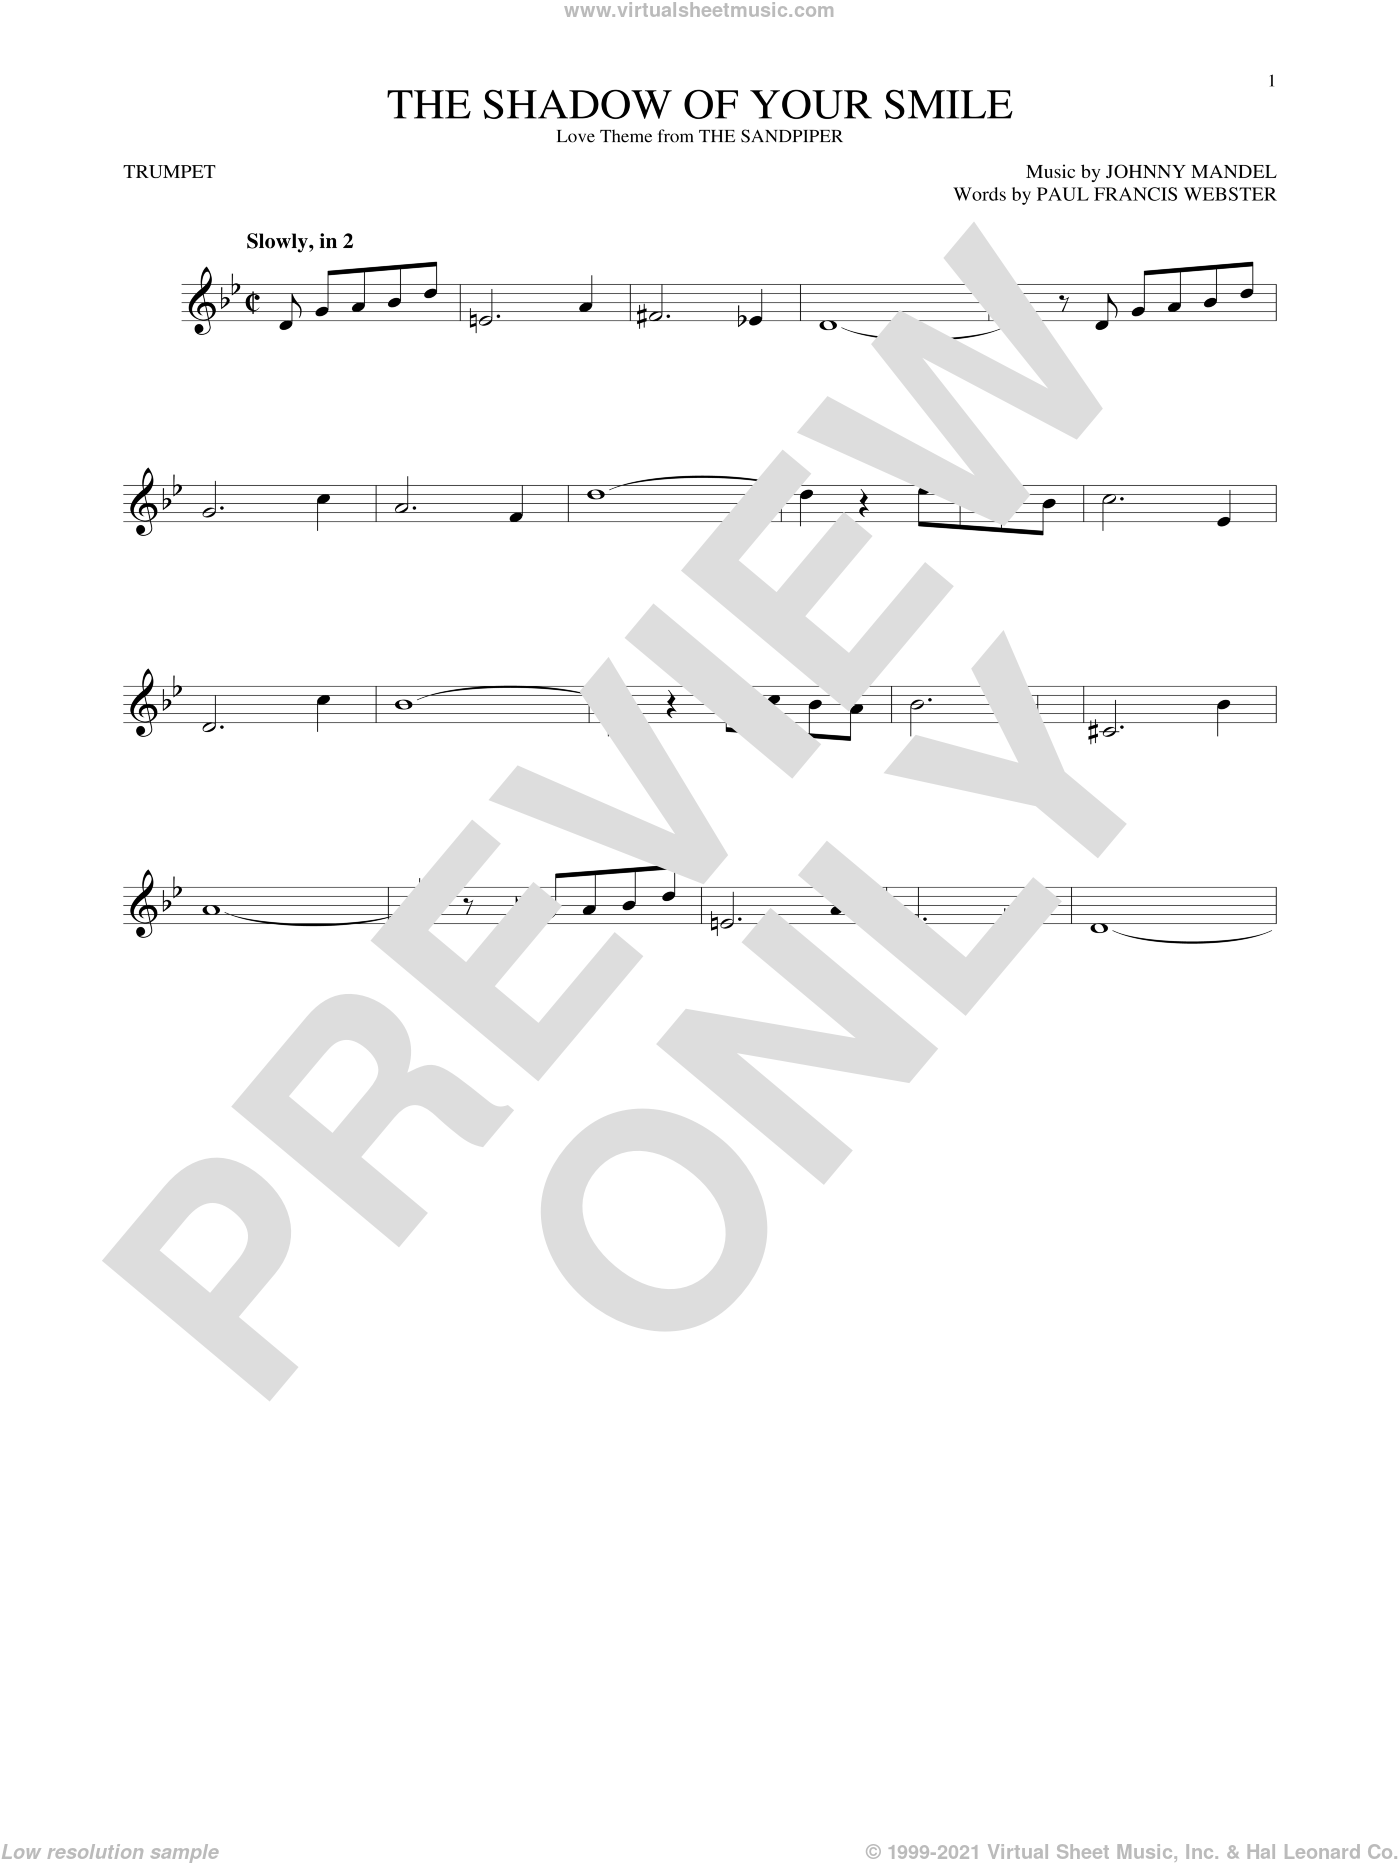 The Shadow Of Your Smile sheet music for trumpet solo by Paul Francis Webster and Johnny Mandel, intermediate skill level